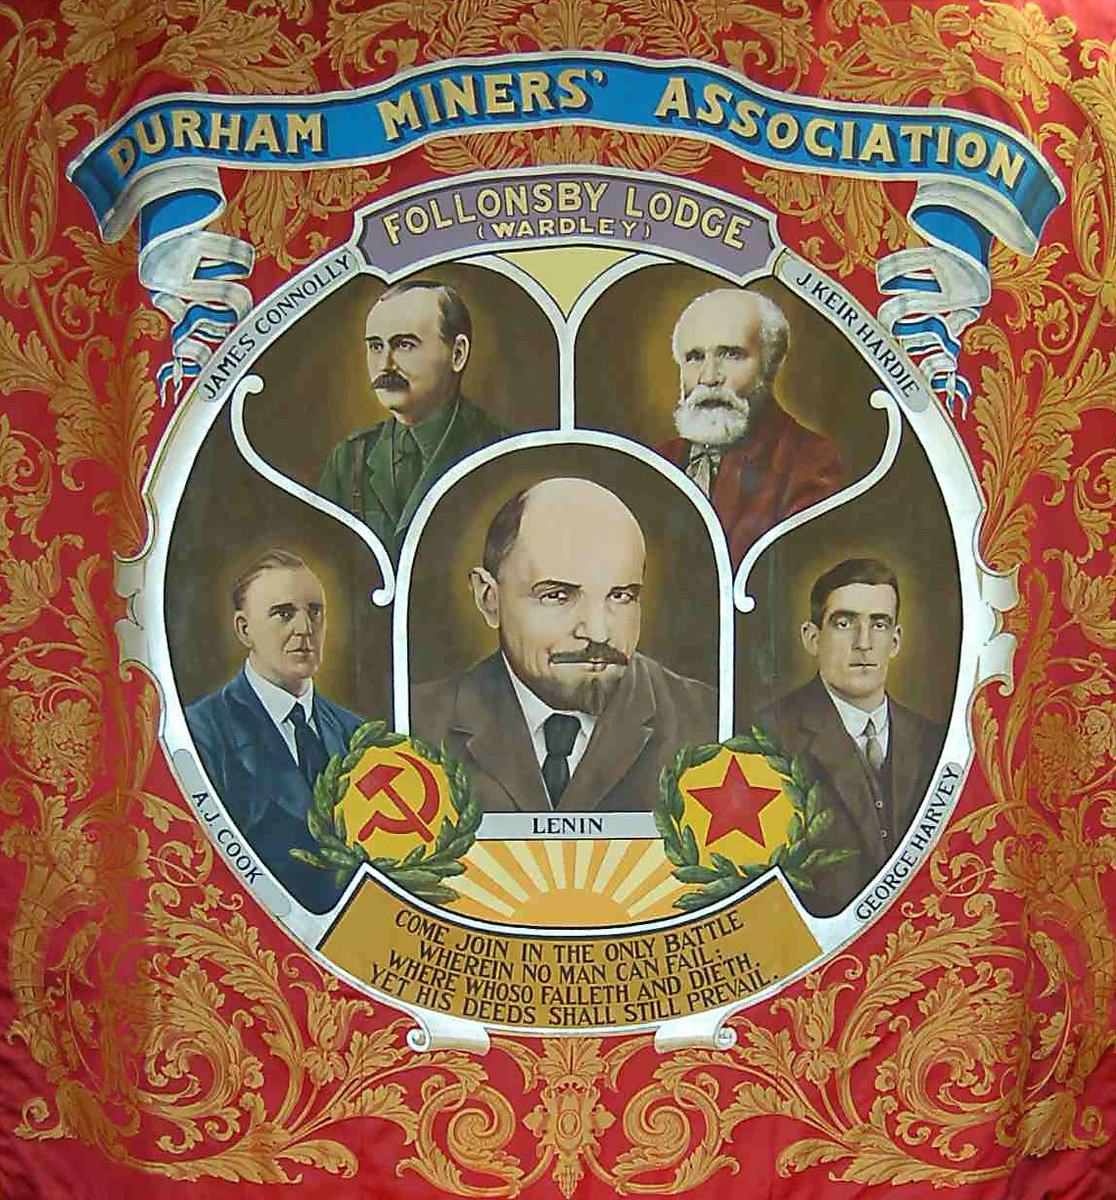 150 years ago today, Irish revolutionary James Connolly was born. In the 1920s he was honoured by the miners of Follonsby who included his portrait on their banner.